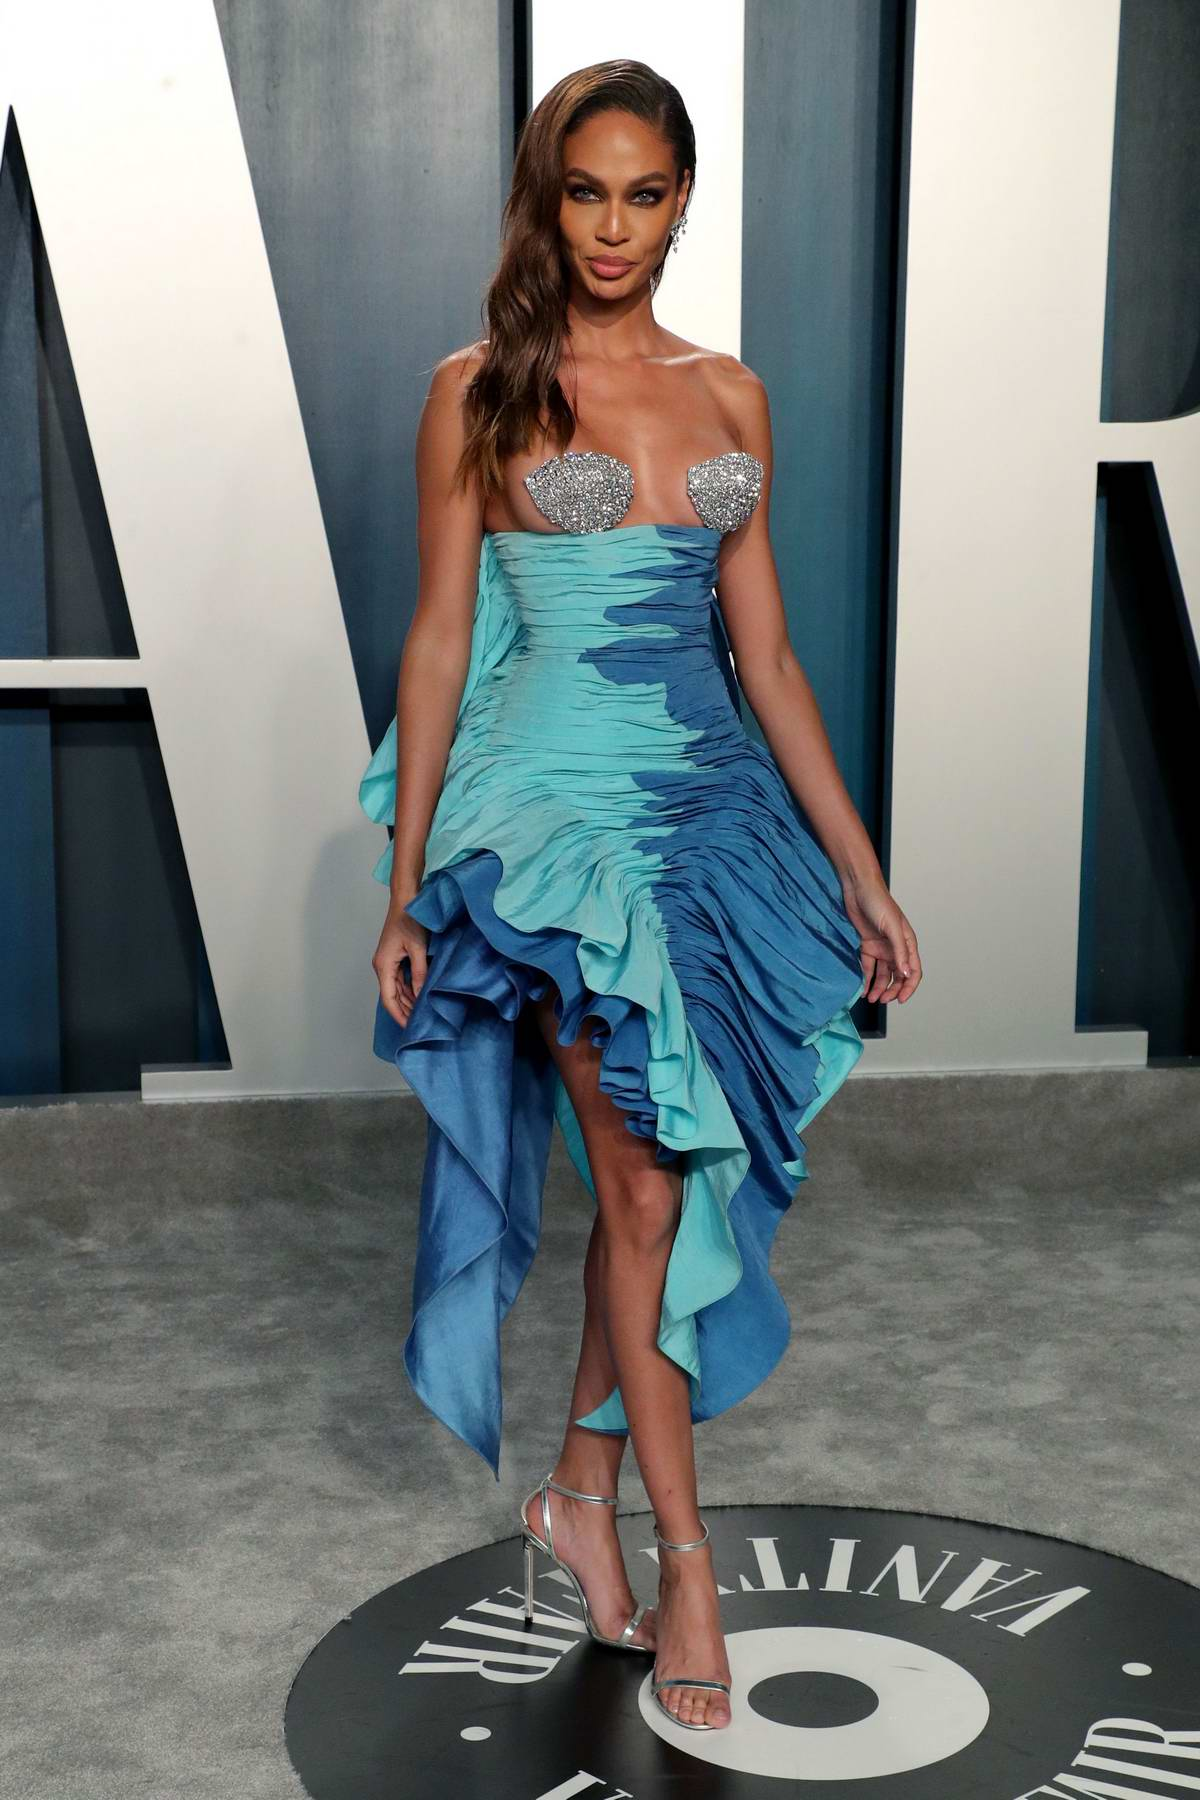 Joan Smalls attends the 2020 Vanity Fair Oscar Party at Wallis Annenberg Center for the Performing Arts in Los Angeles